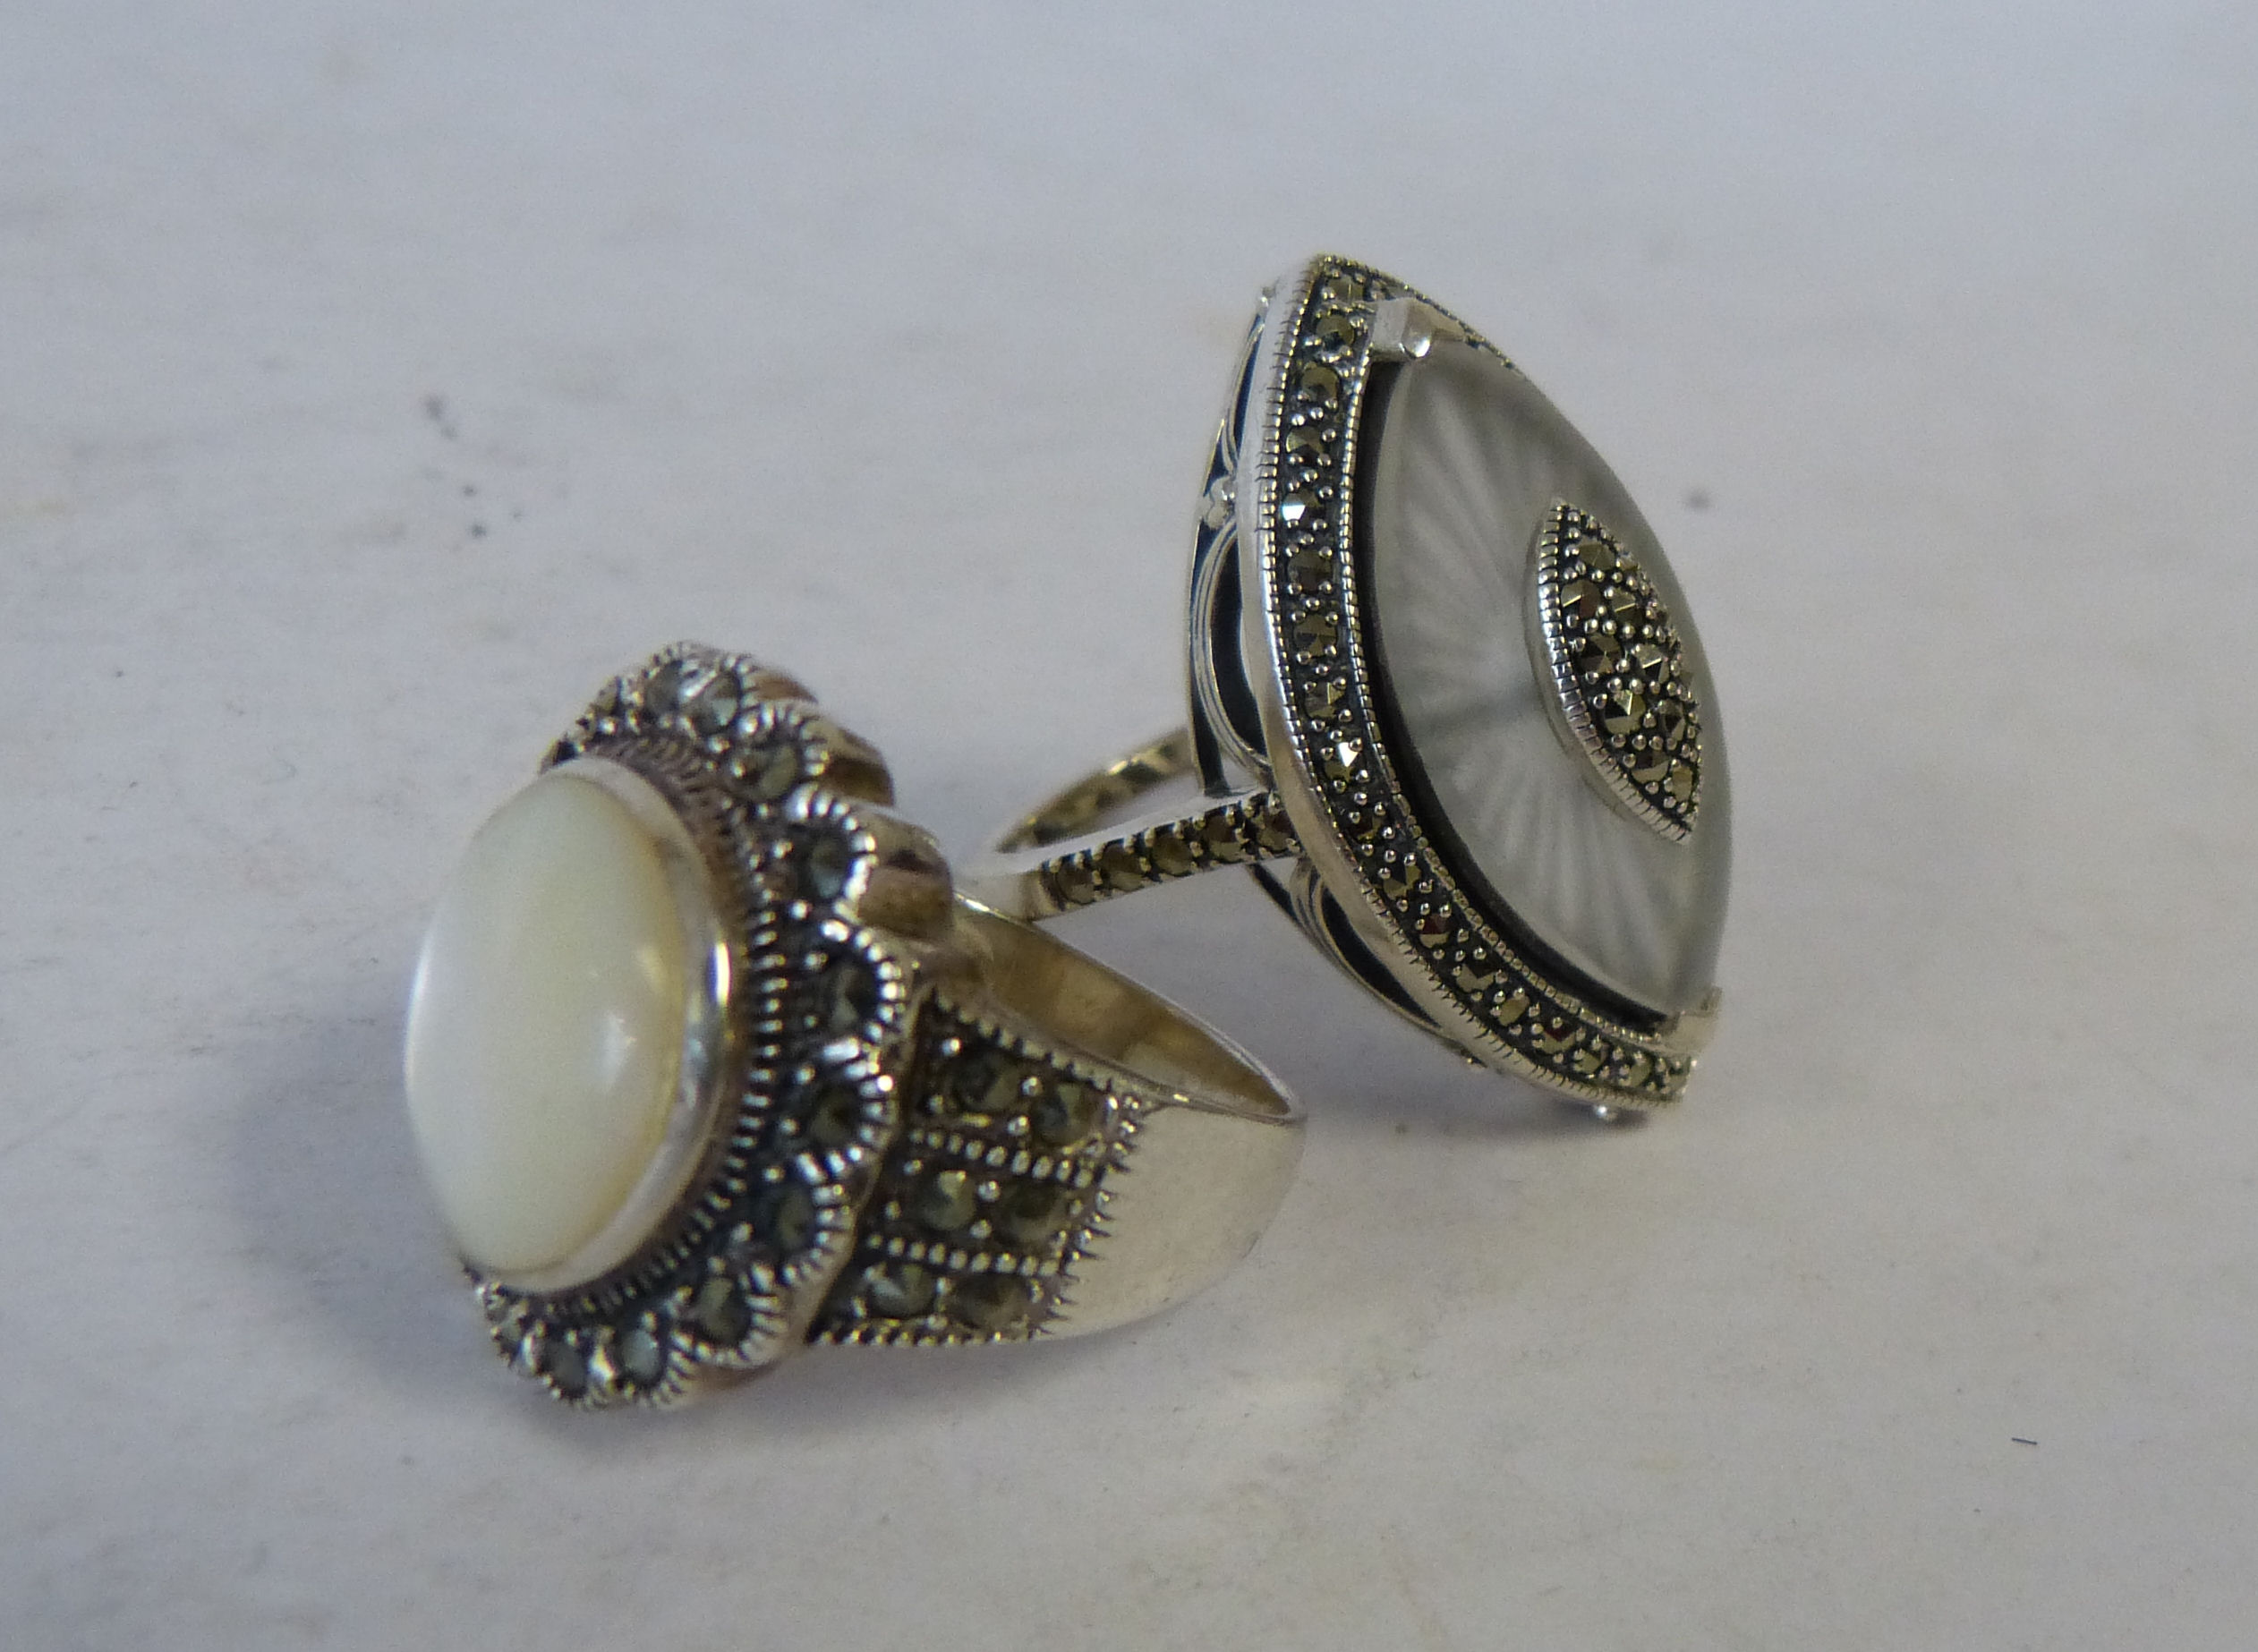 A Silver and Crystal Ring set with Marcasite, also another silver ring set with Mother of Pearl